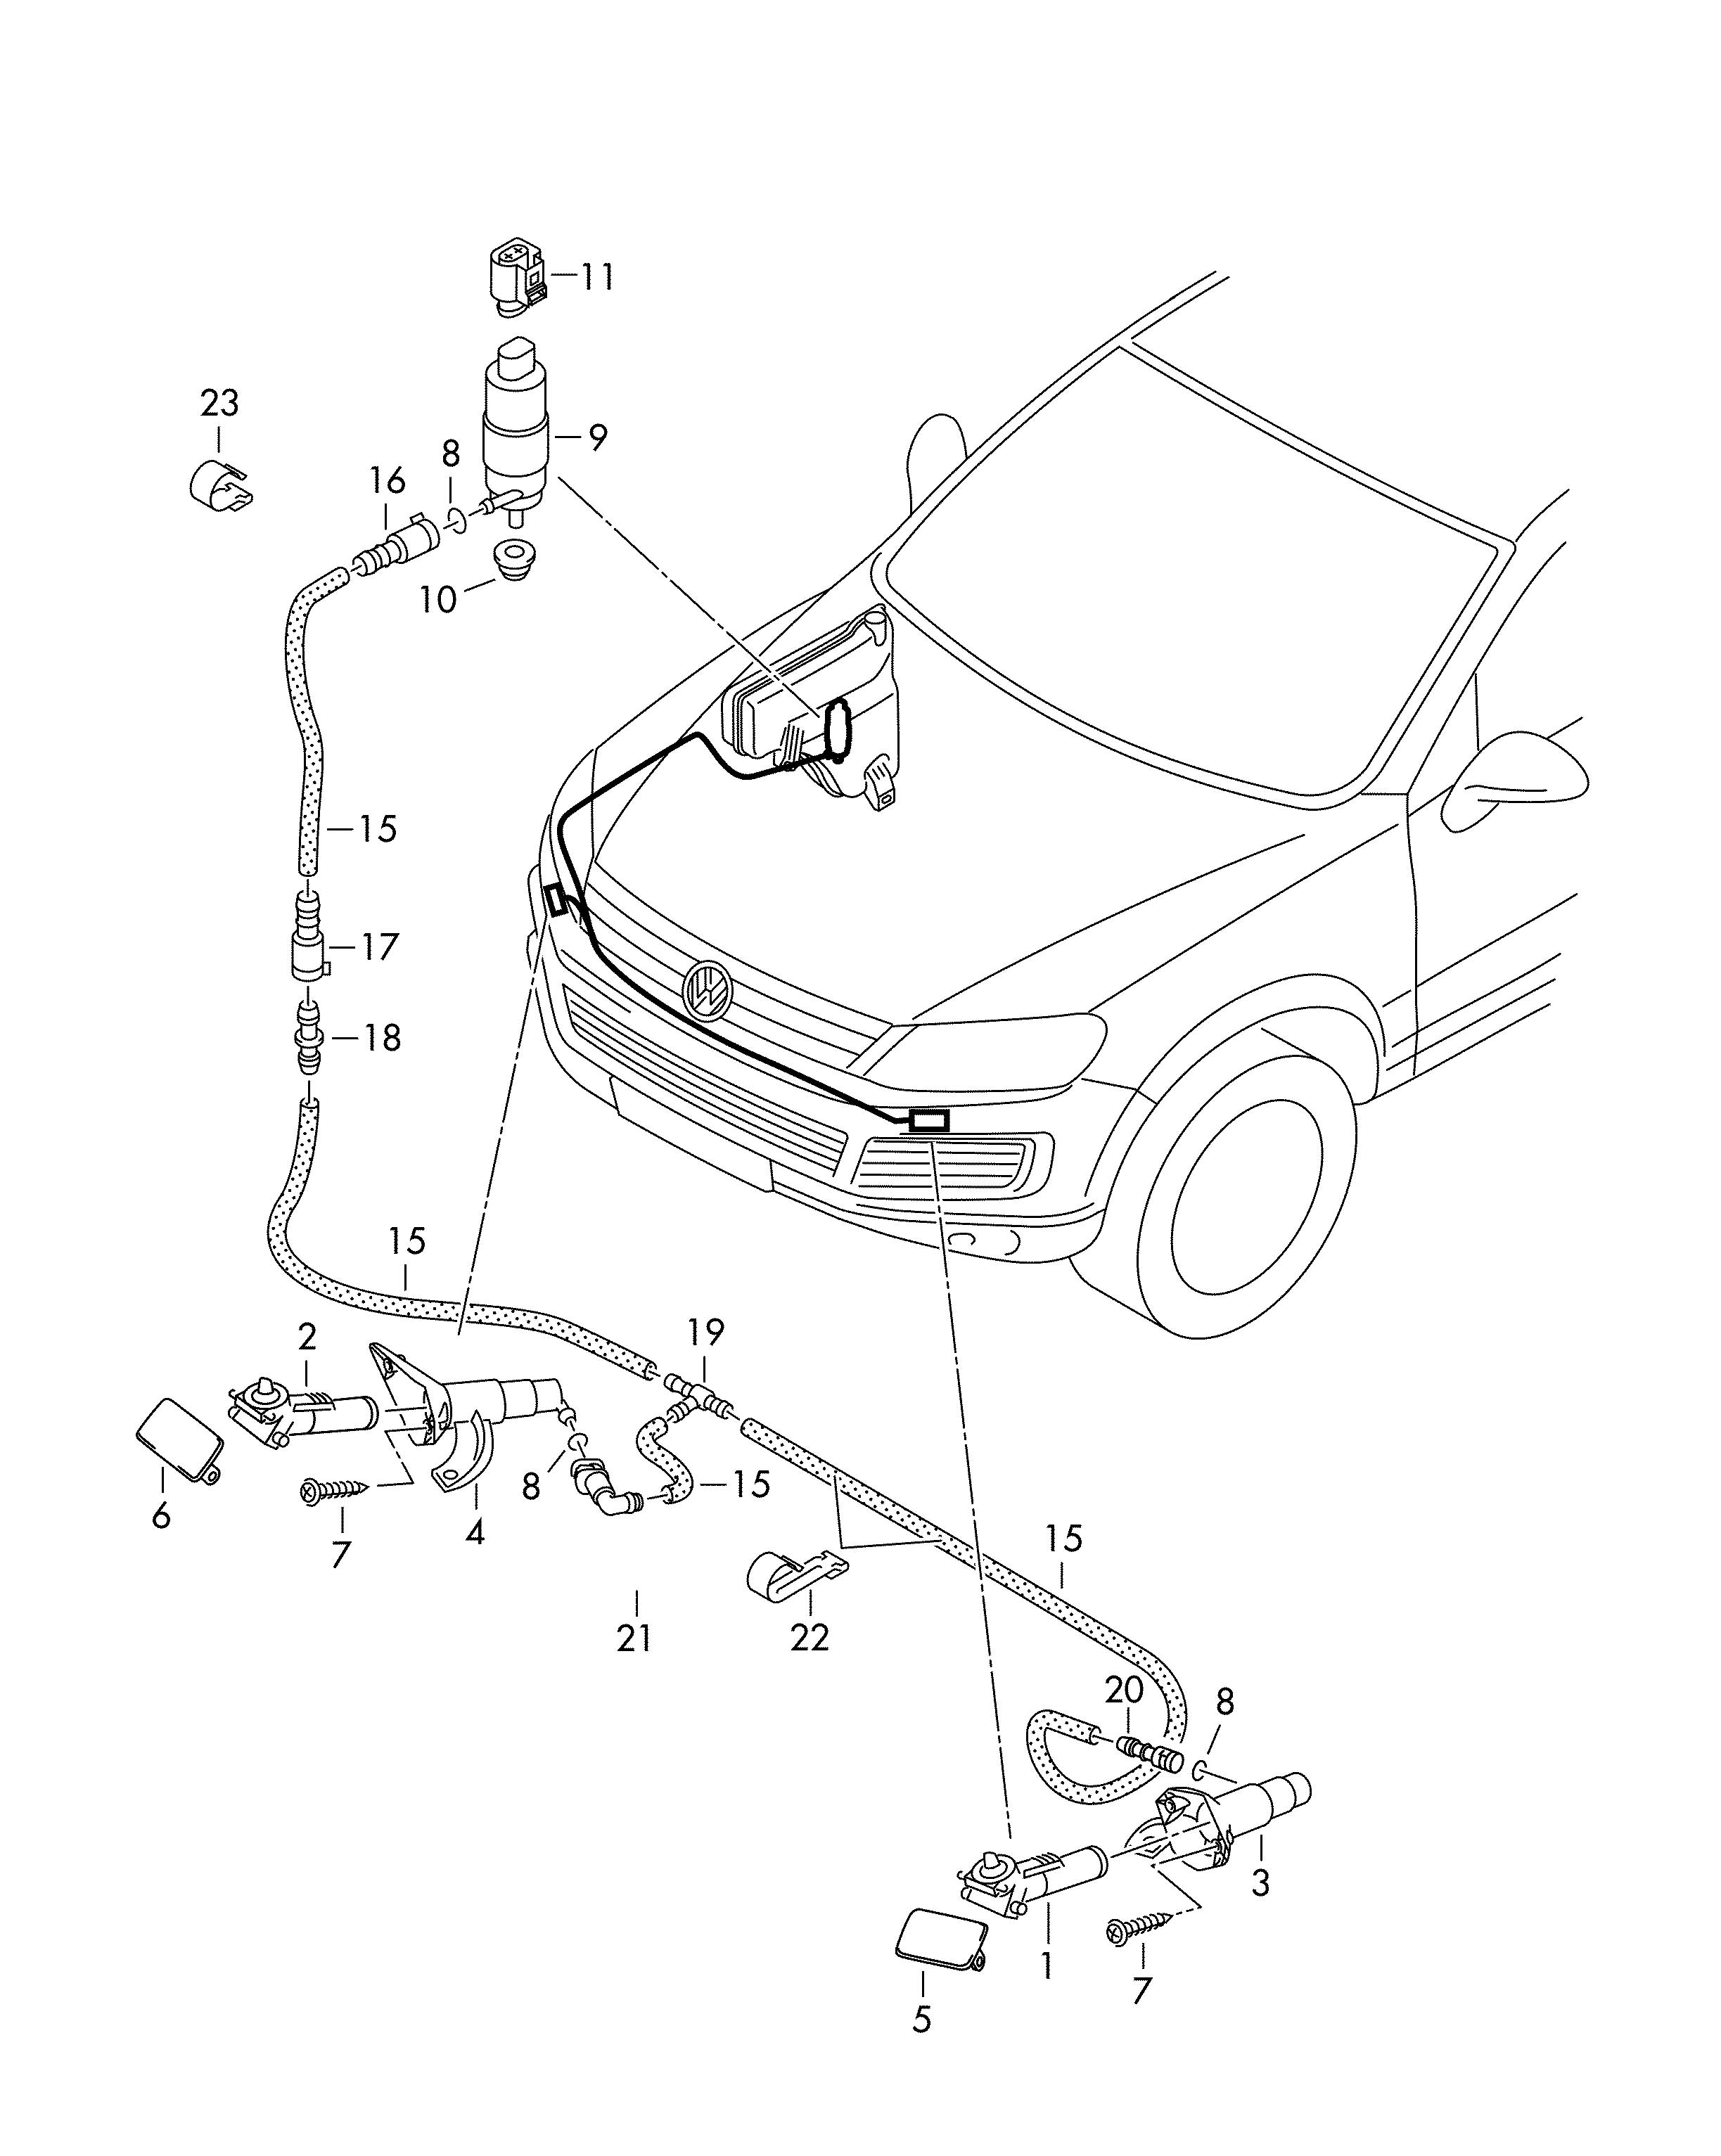 Volkswagen Touareg Connecting Piece When Using